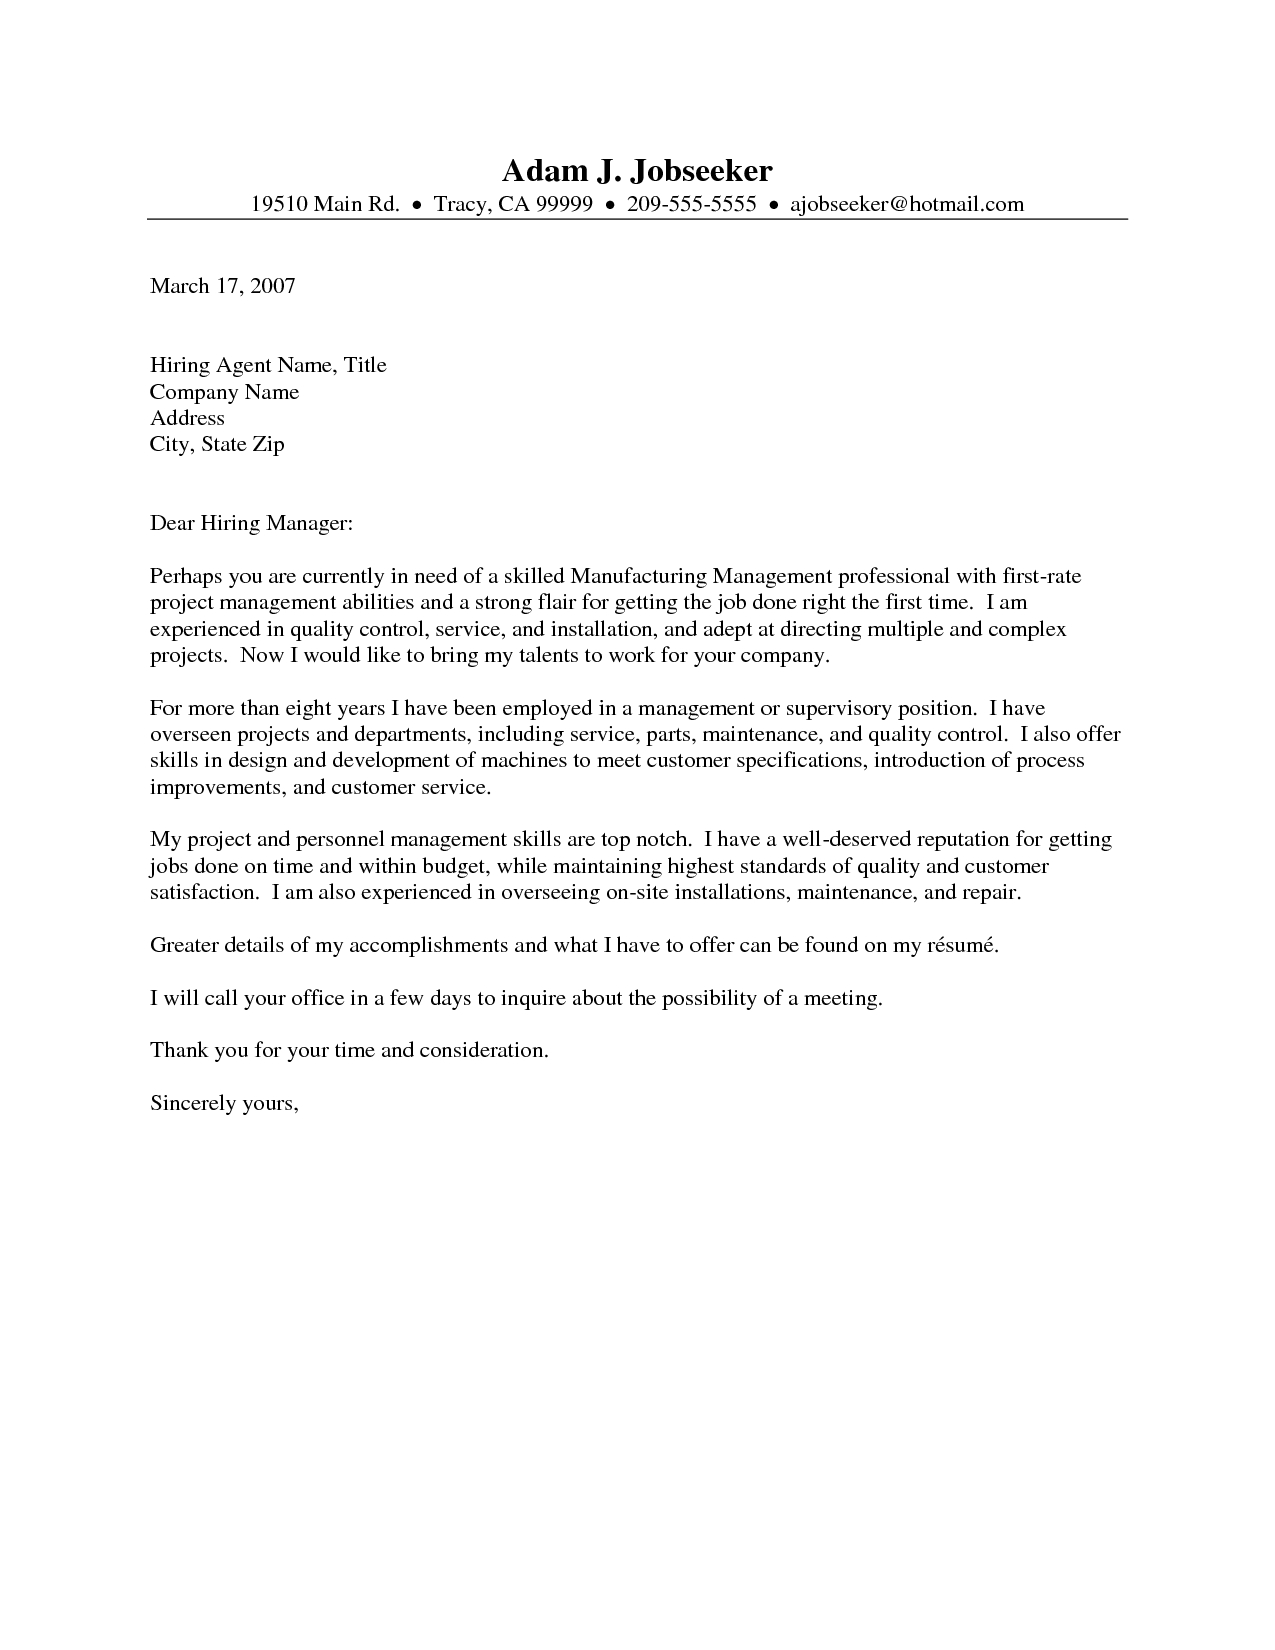 Cover Letter Template for Medical Office assistant - Free Cover Letter Examples for Resume Cover Letter for Resume